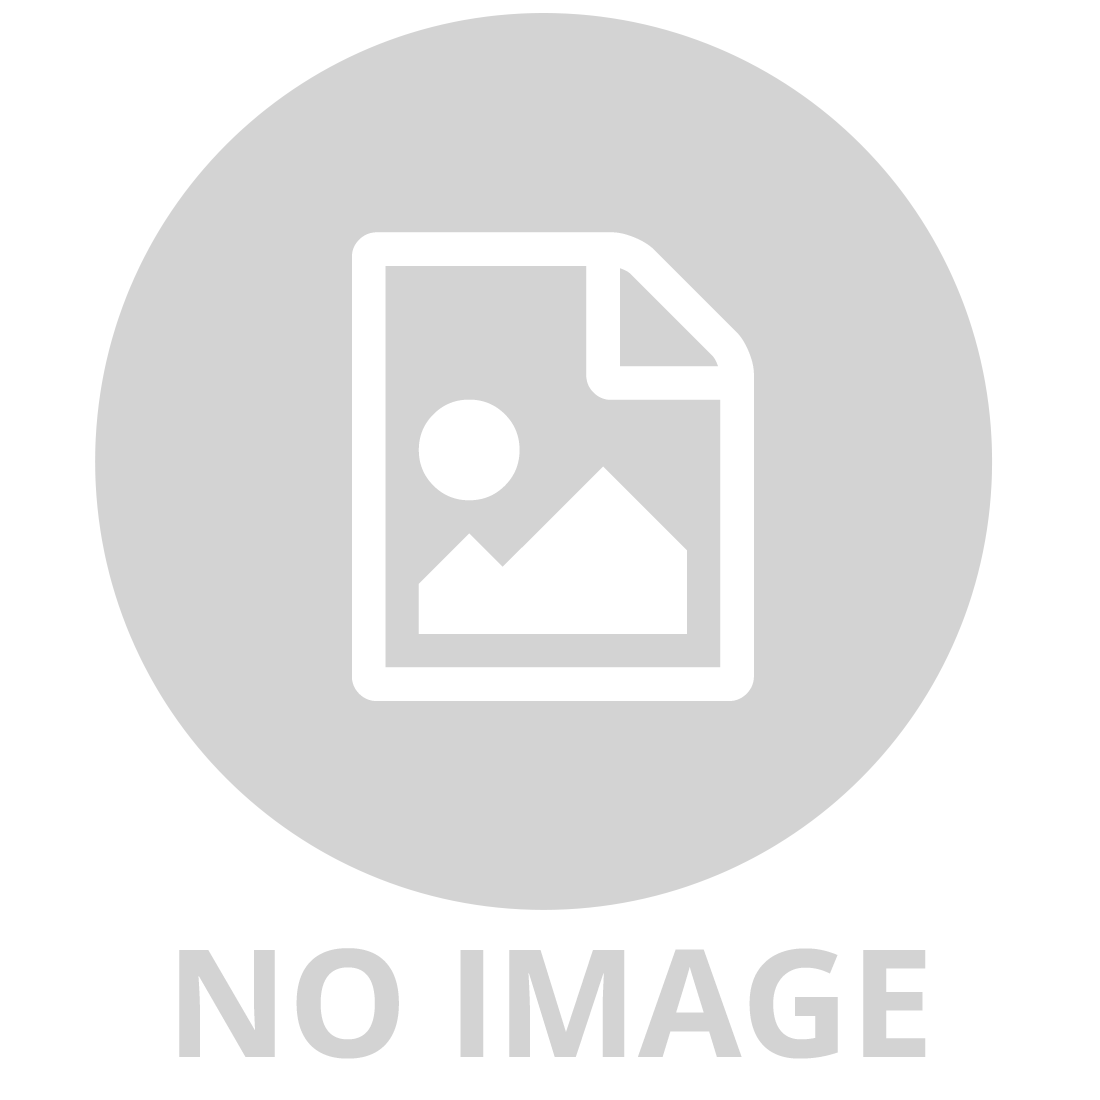 HORNBY WESTERN MASTER DIGITAL TRAIN SET